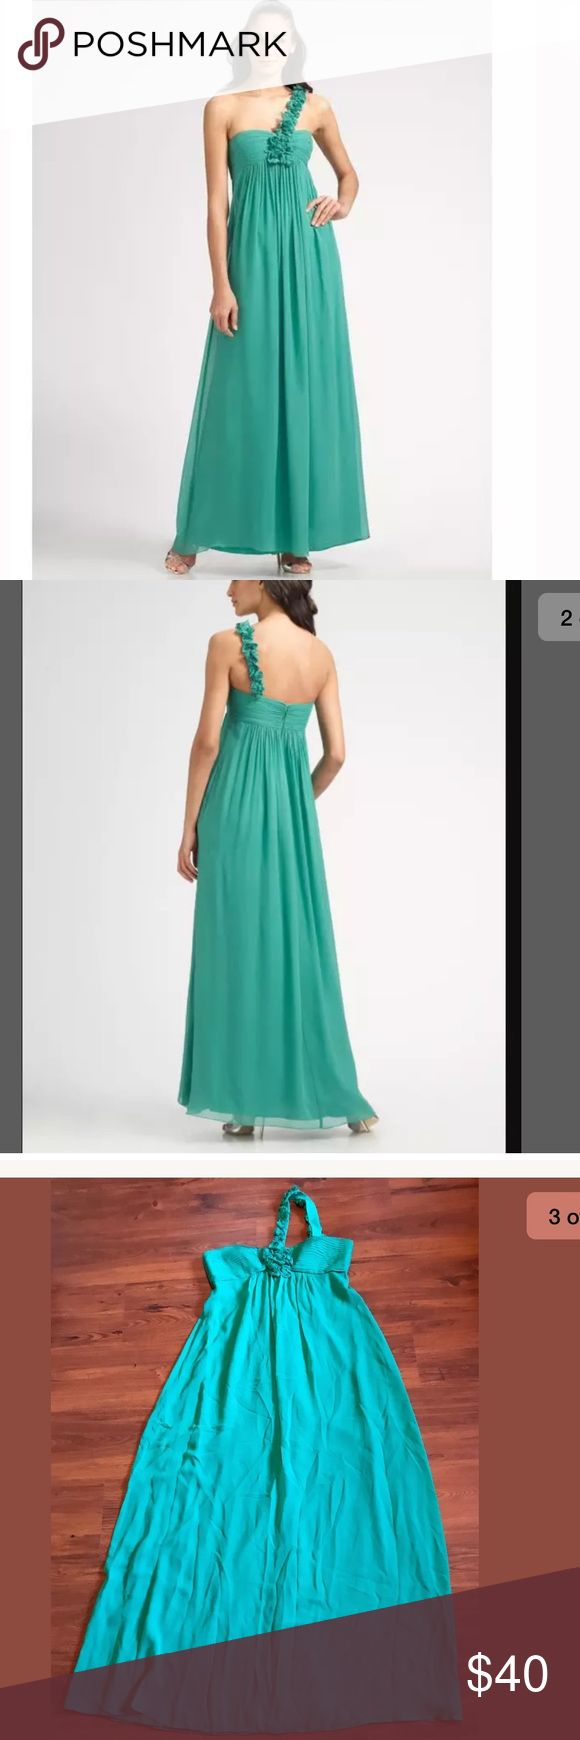 """BCBGMAXAZRIA One-Shoulder Rosette Band Gown BCBGMAXAZRIA One-Shoulder Rosette Band Gown in Emerald Size 10  Dress is preowned, but is in good used condition. Does not have any holes, tears, rips, or stains. Does have some minor snags in some spots - typical of silk dresses.   Retailed for ~$250.    Approximate Measurements:   Armpit to armpit: ~18""""   Shoulder to bottom hem: 51""""   Waist (natural, lying flat): 16.25"""" BCBGMaxAzria Dresses"""